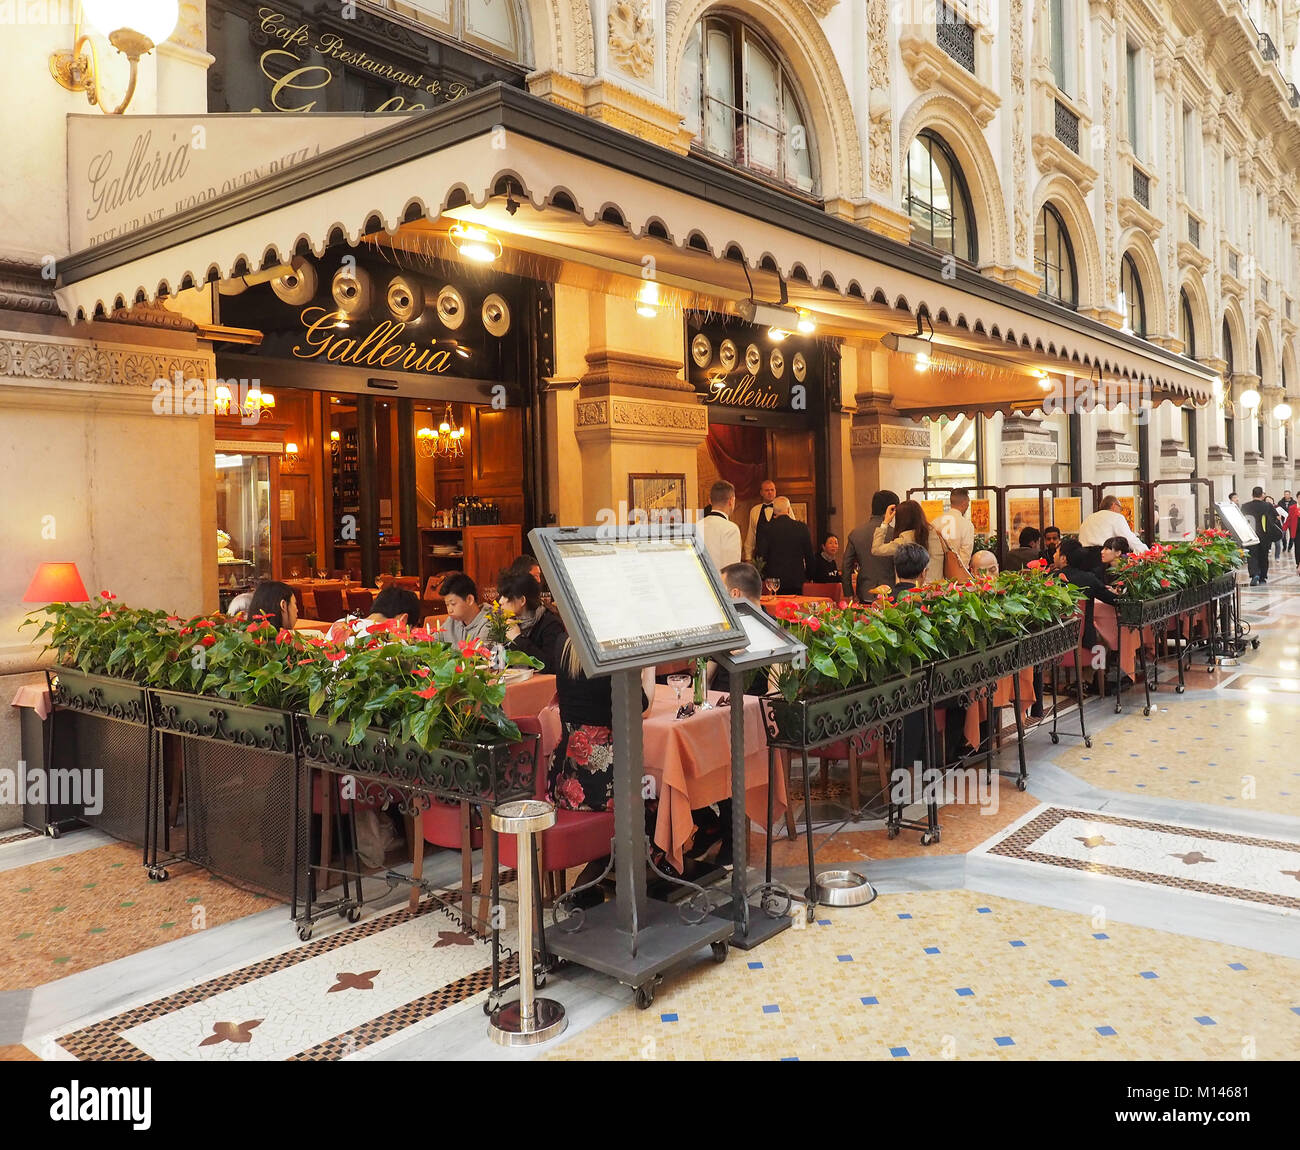 Italy,Lombardy,Milan,Restaurant /cafè ' La Galleria ' in the Vittorio Emanuele Gallery - Stock Image